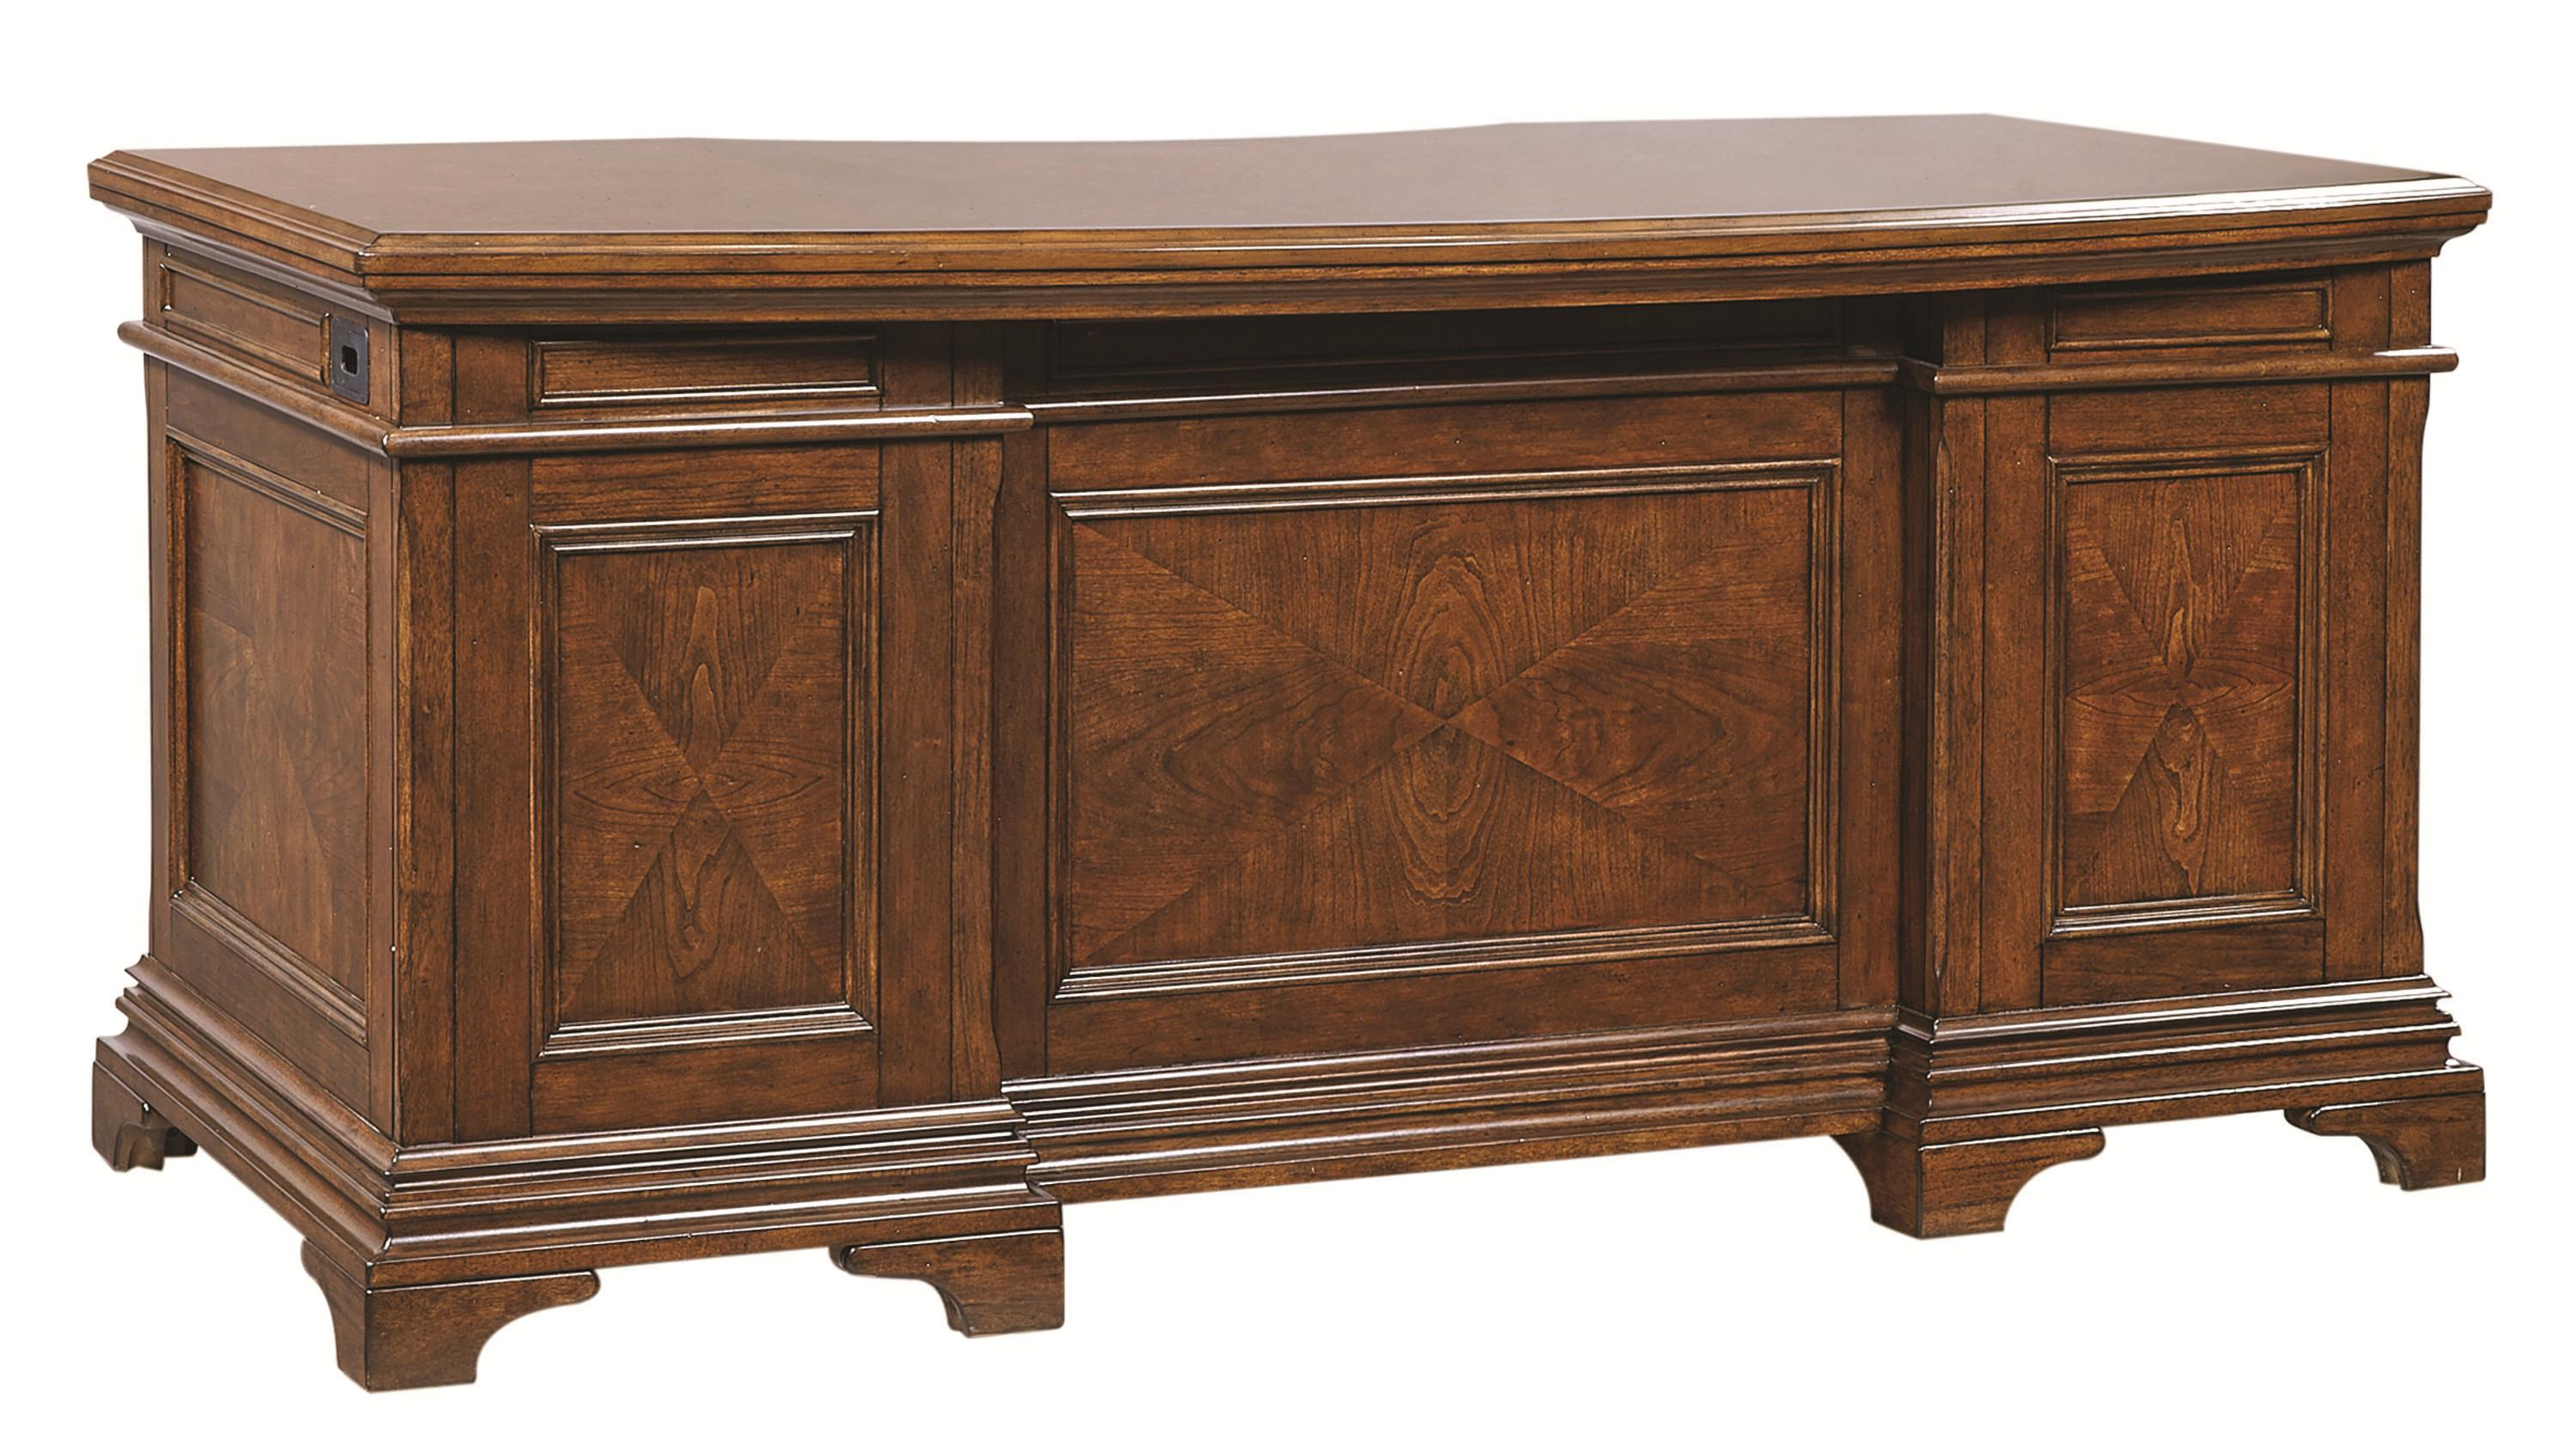 Hawthorne Curved Executive Desk by Aspenhome at Walker's Furniture